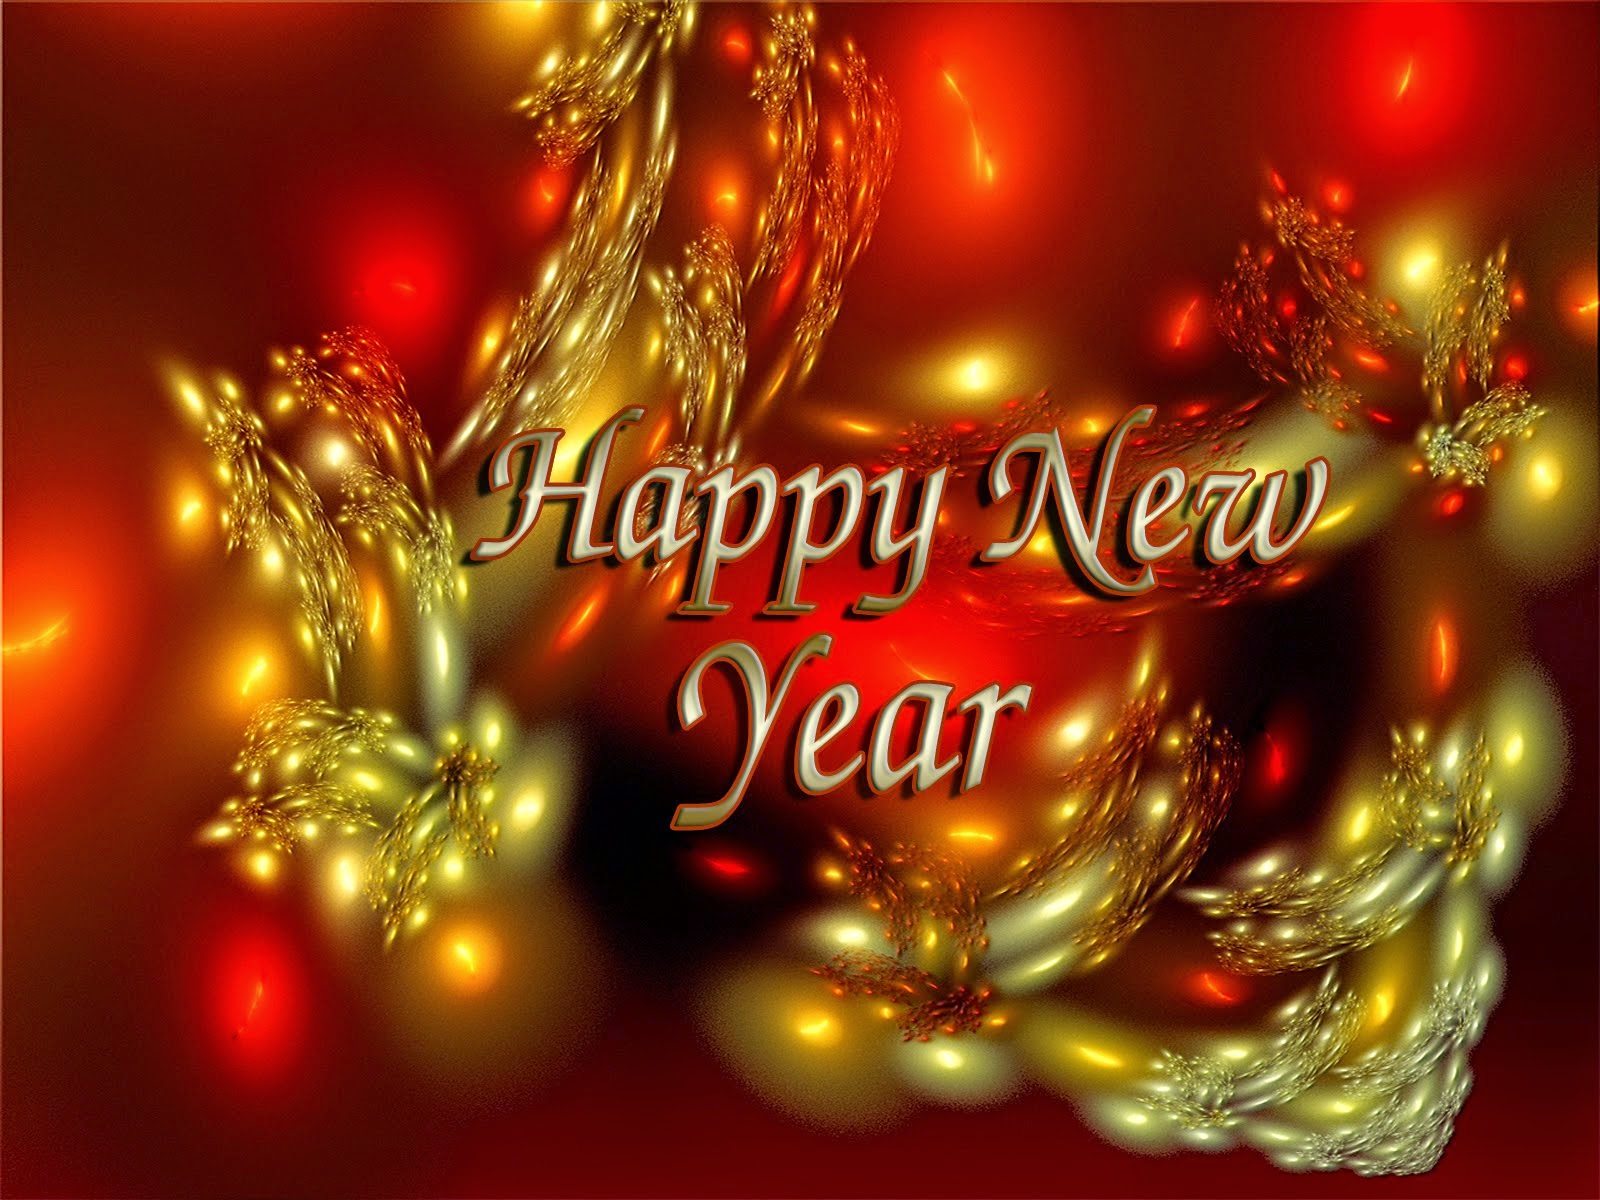 Happy New Year 2015 Animated 3D wallpapers Download Happy New 1600x1200